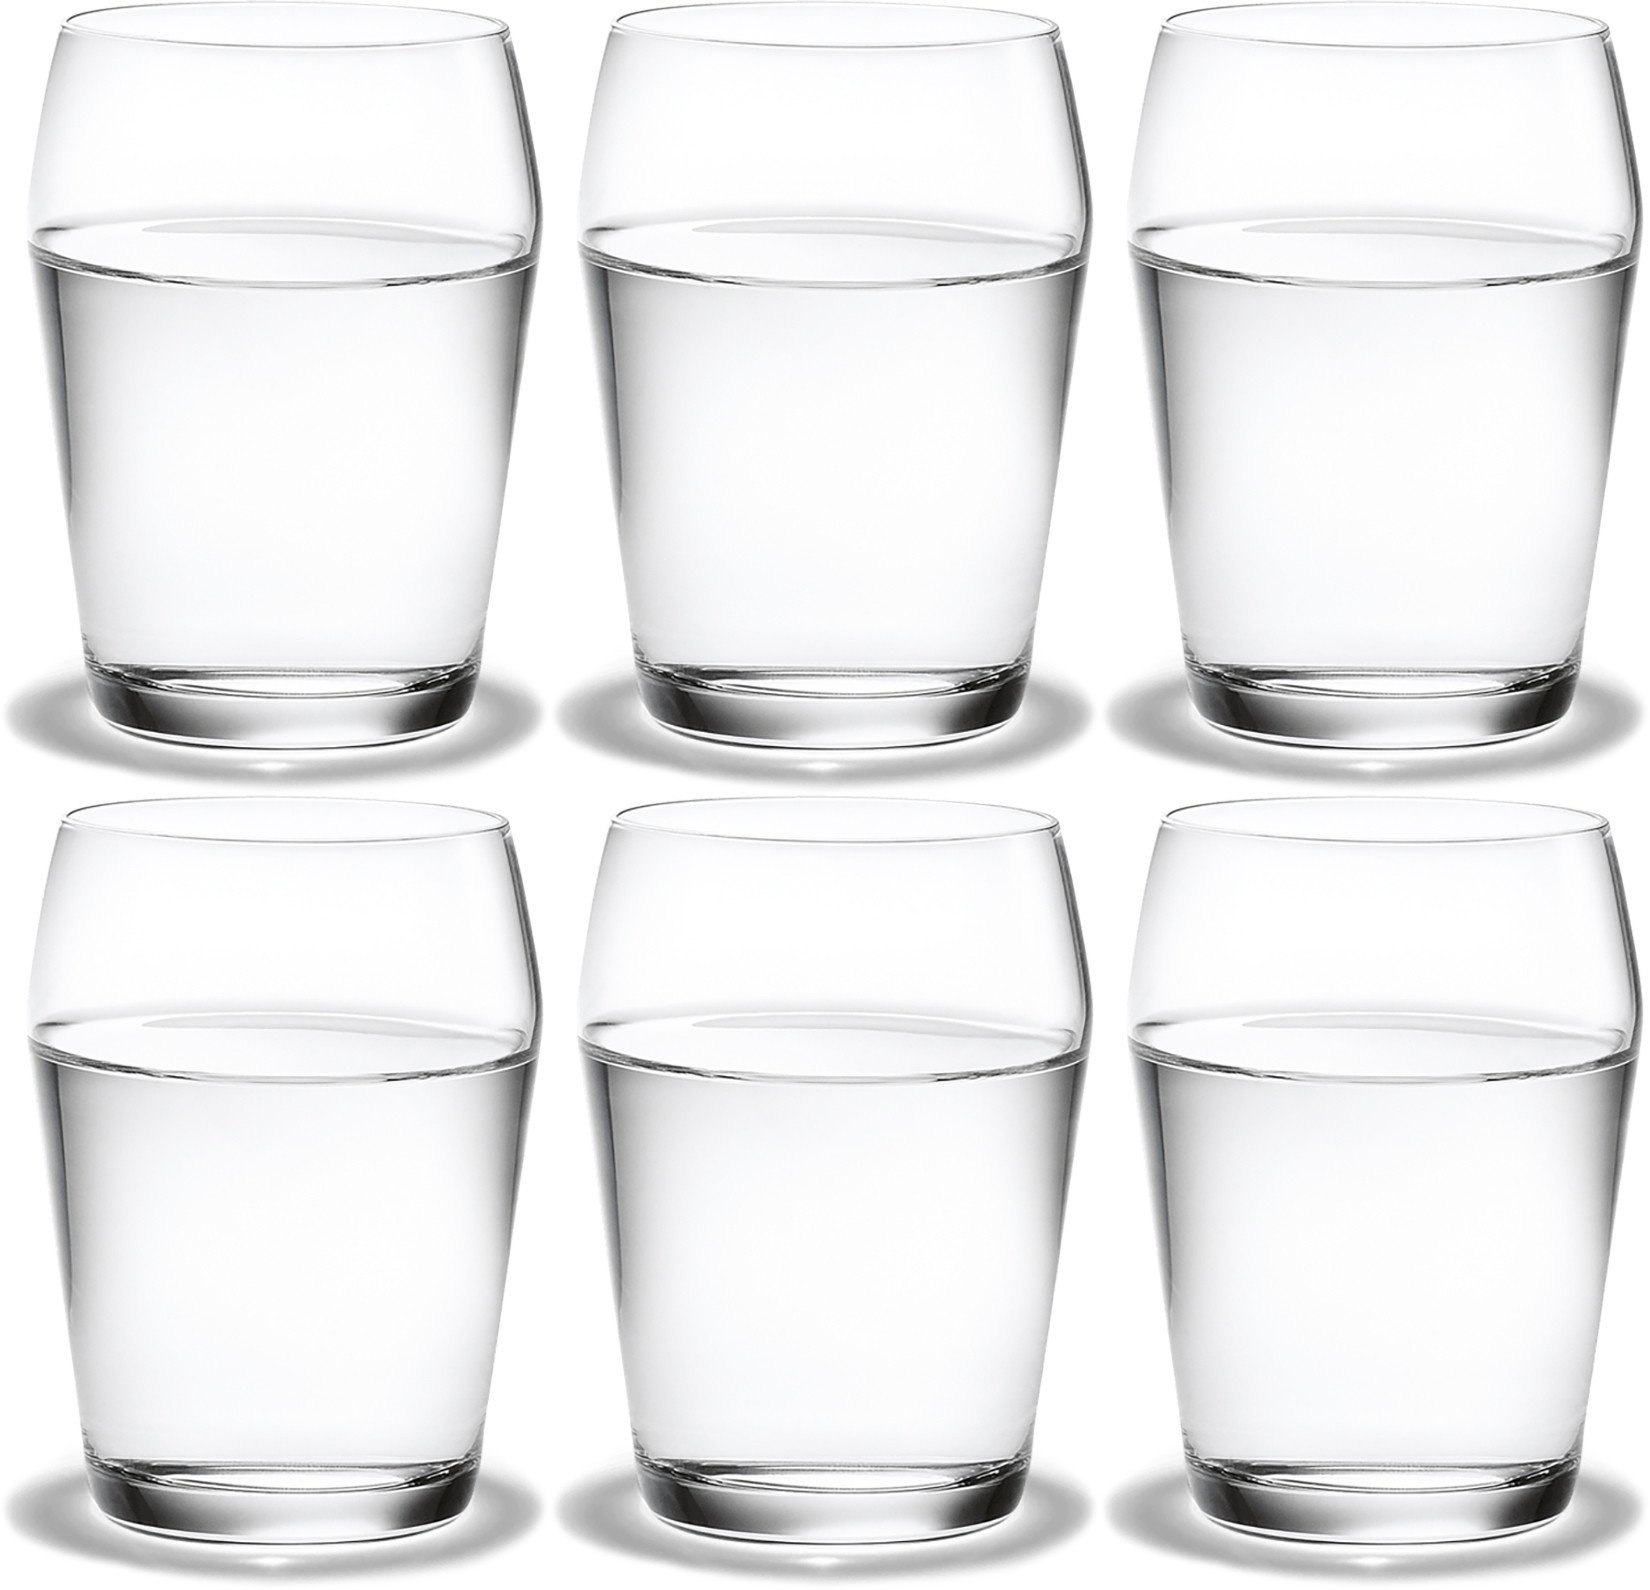 Set of Six Perfection Tumblers 23cl by T. Nybroe for Holmegaard